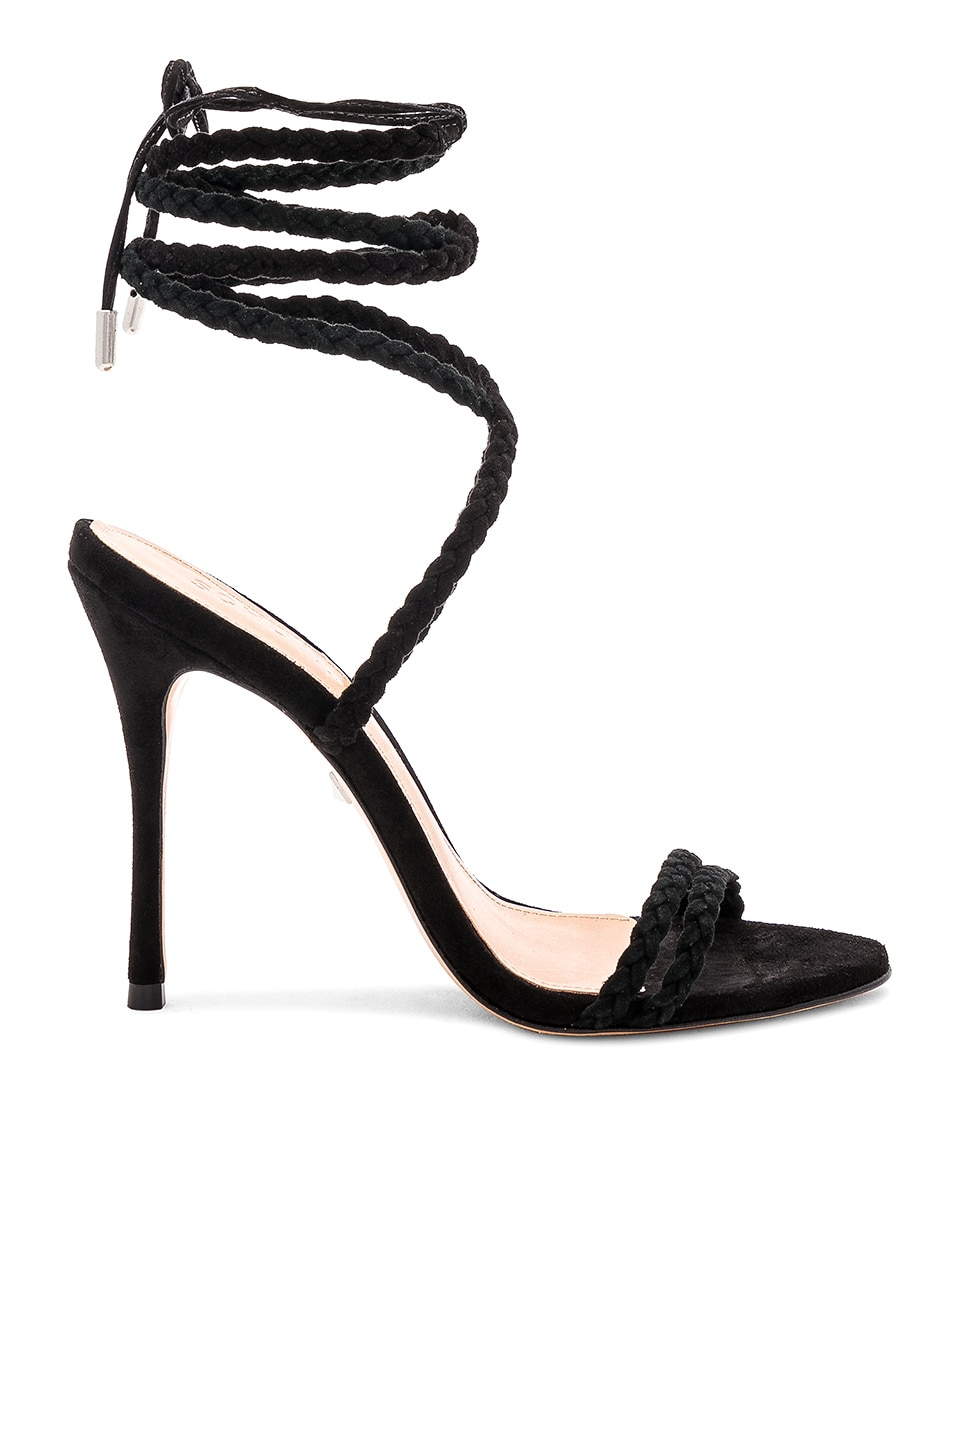 Schutz Lany Sandal in Black